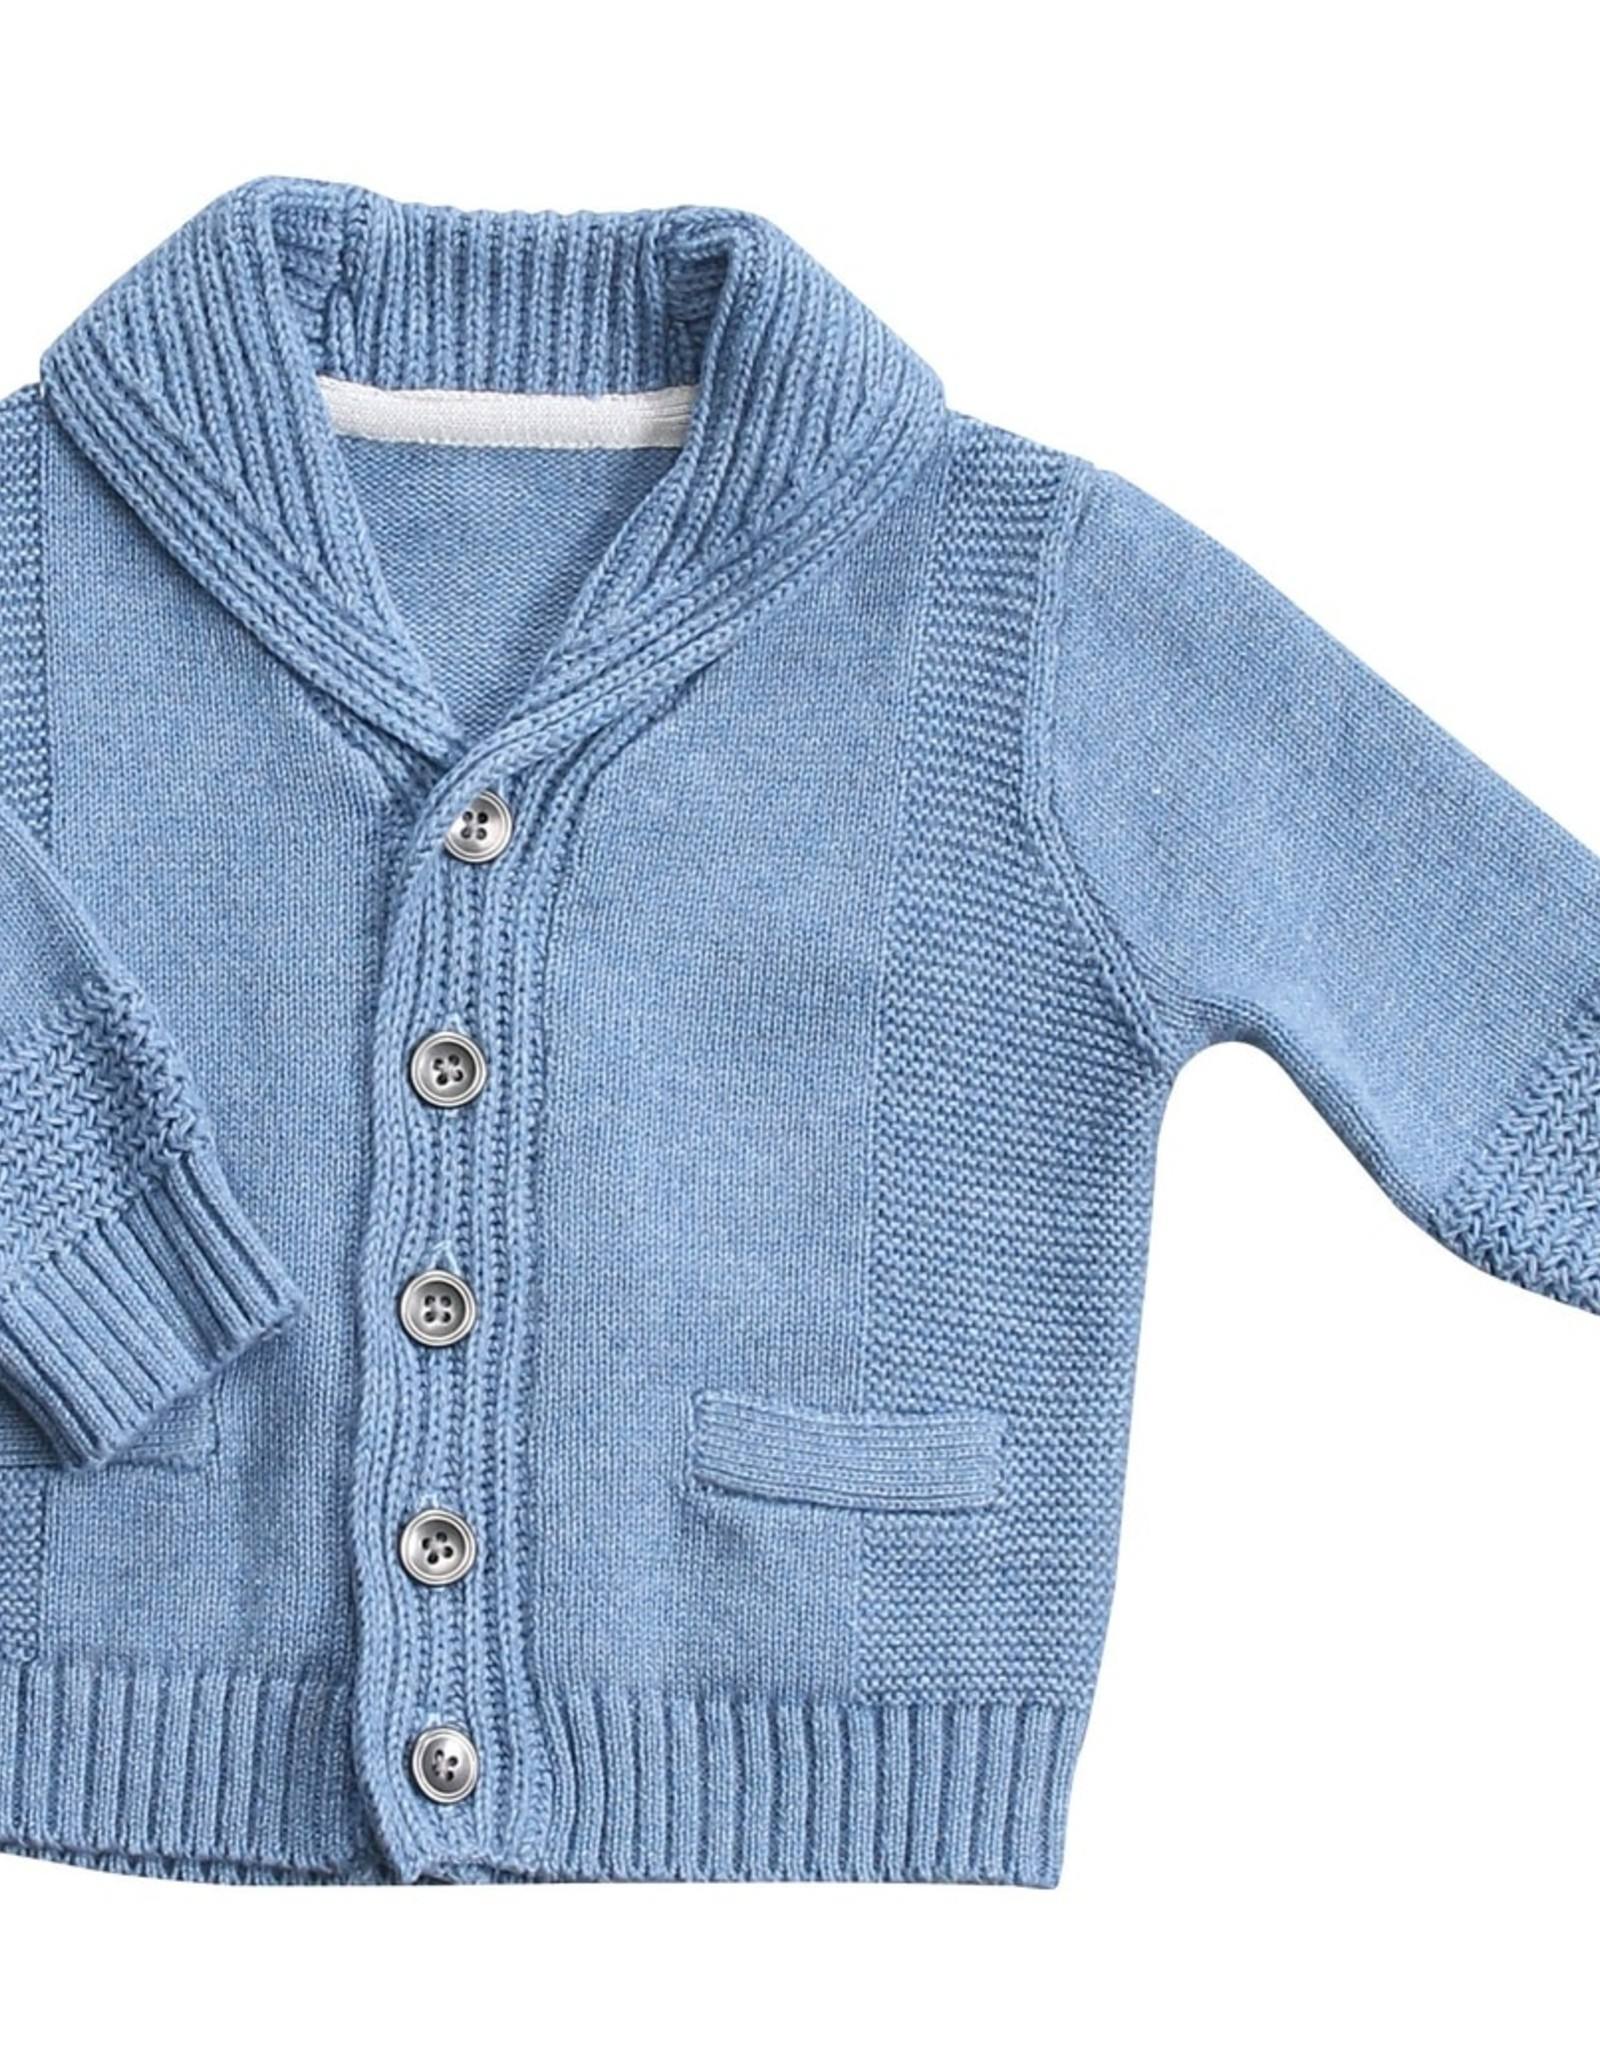 Angel Dear Angel Dear Shawl Collar Cardigan - Blue Heather